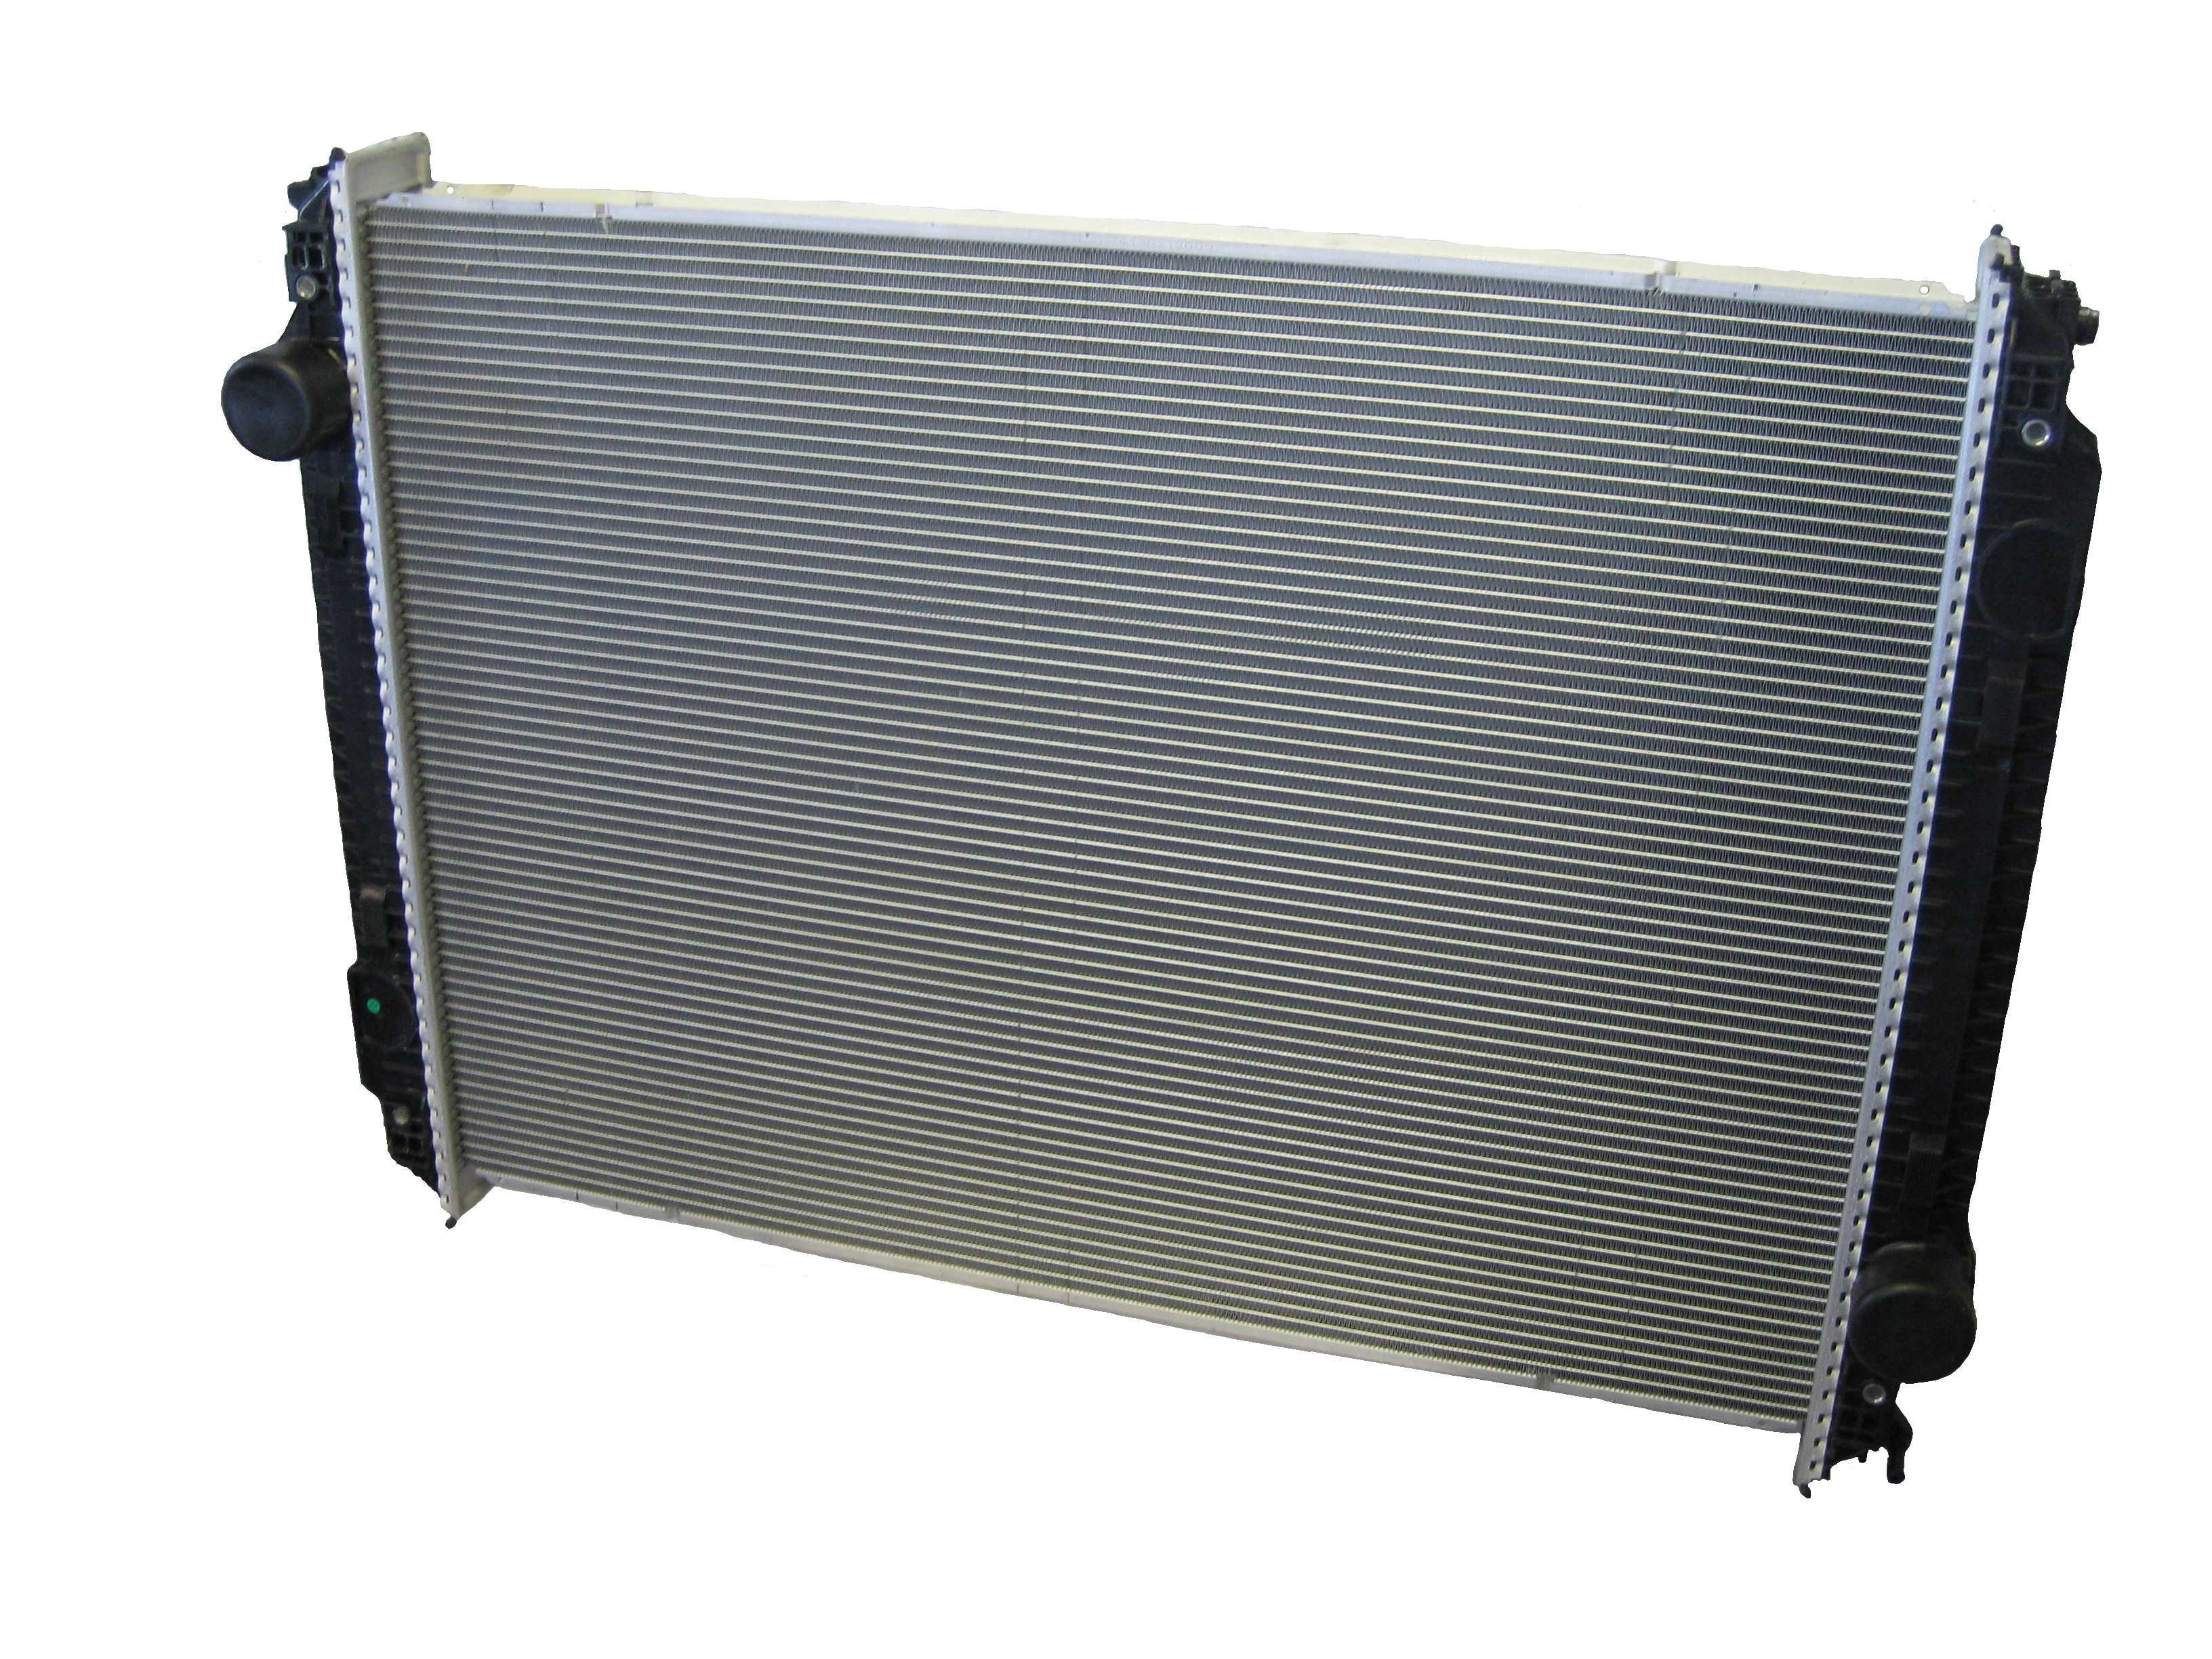 Freightliner FLD Century Business Radiator Front View.